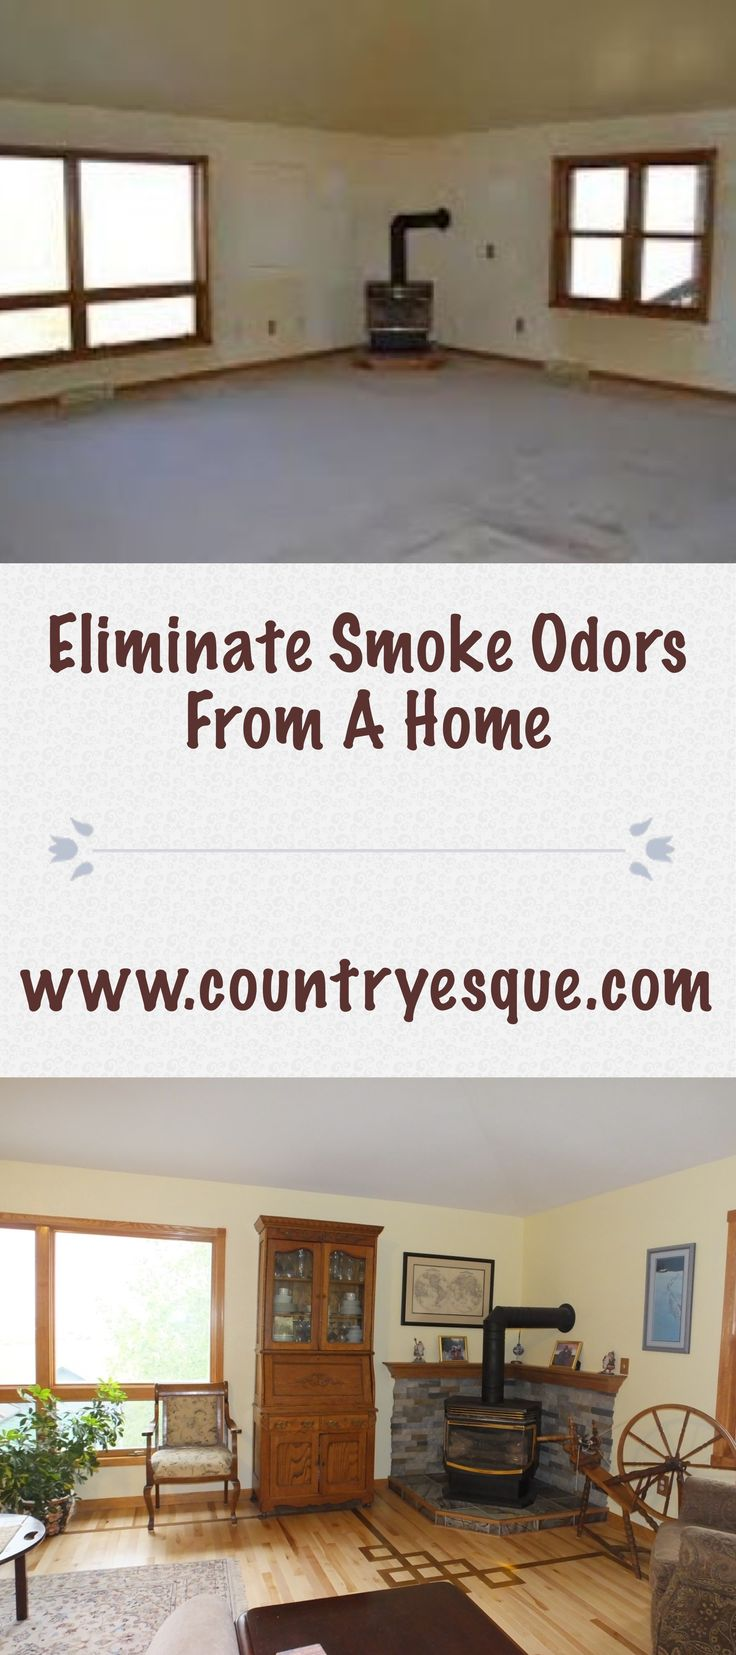 How To Eliminate Smoke Odors From A Home